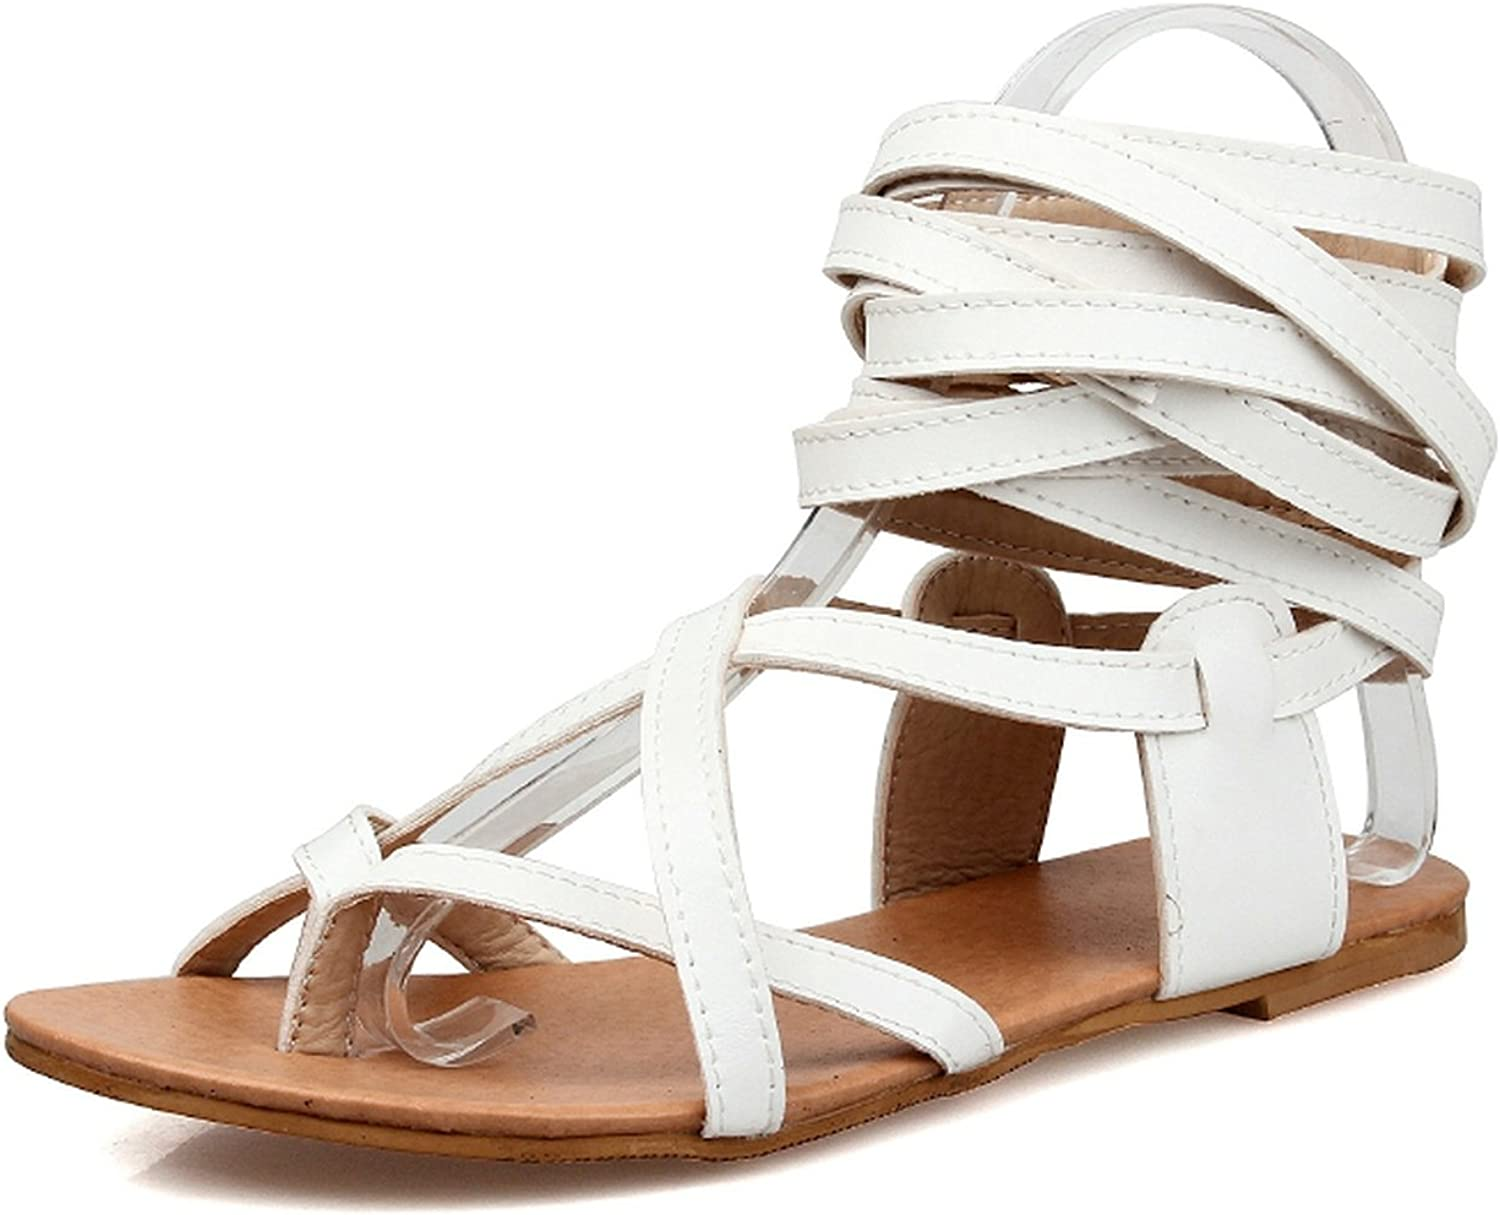 Nerefy New Big Size 30-50 Ankle Wrap Women Sandals Gladiator Leisure Flat Heels Woman Beach shoes